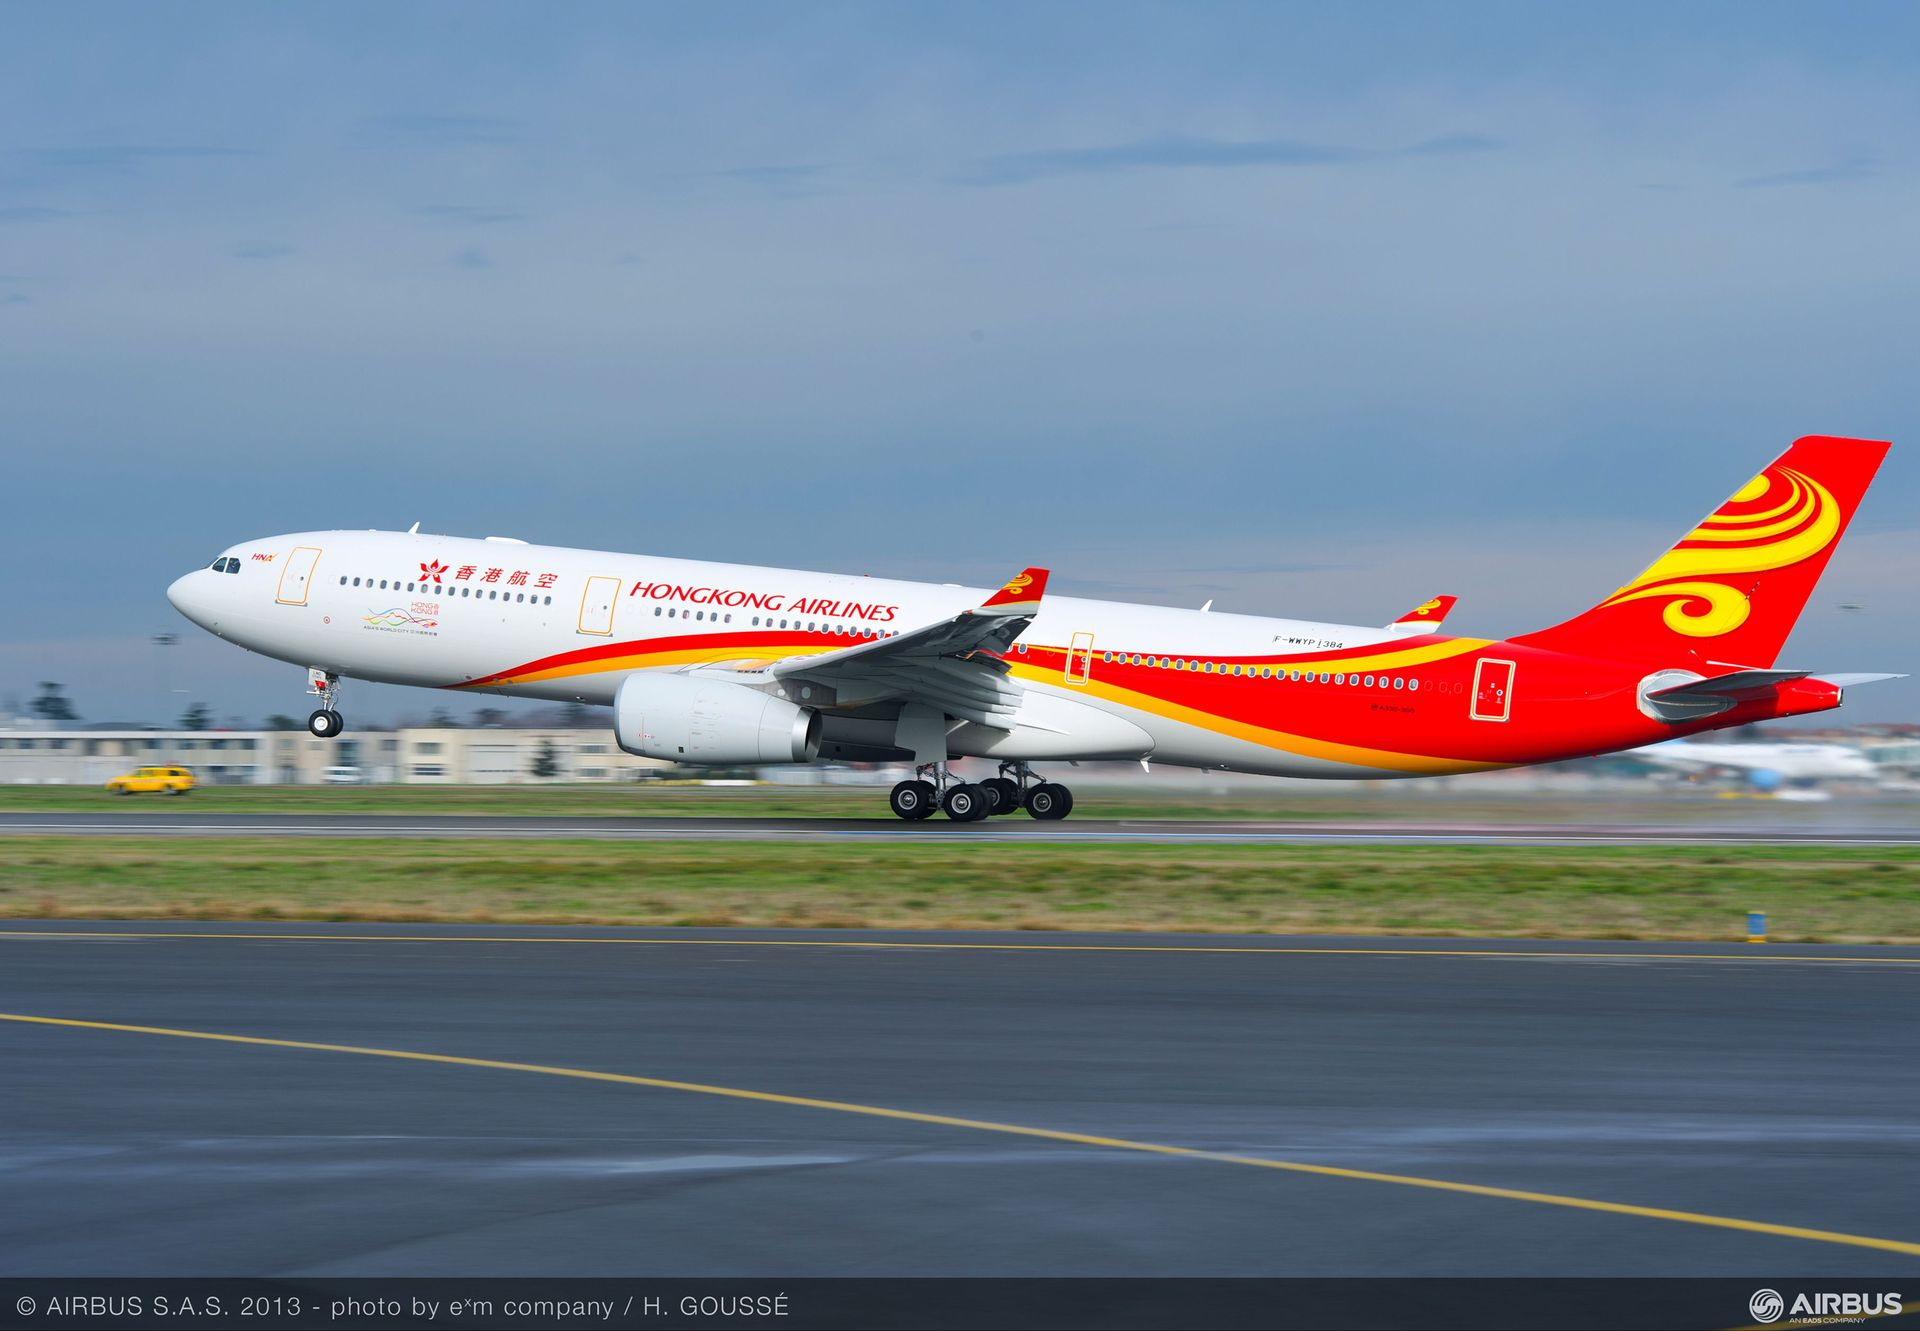 Hong Kong Airlines pulls out of Auckland dealing blow to travel industry